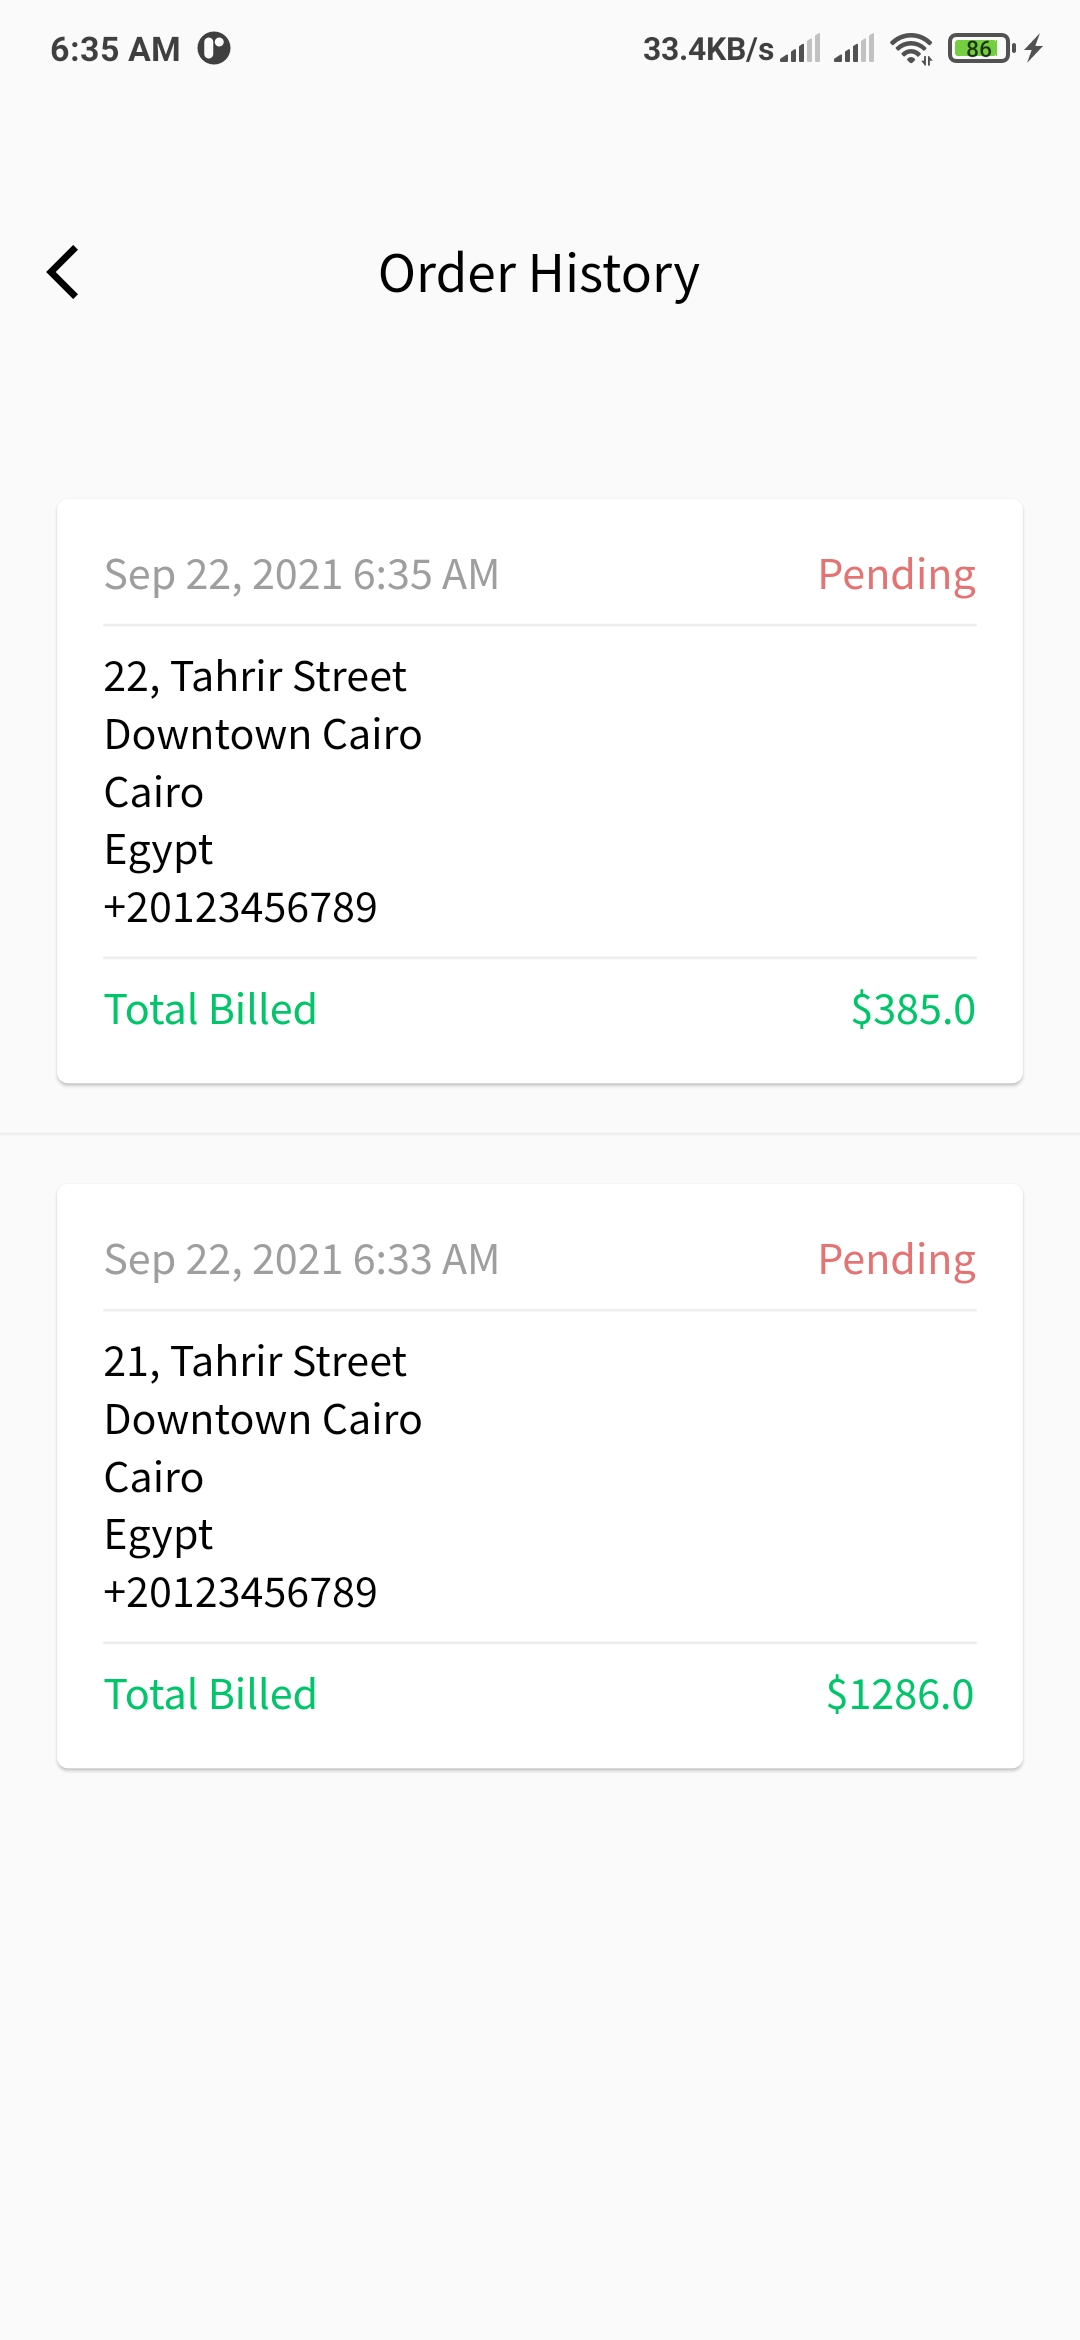 A new open source E-commerce App created using Flutter and GetX